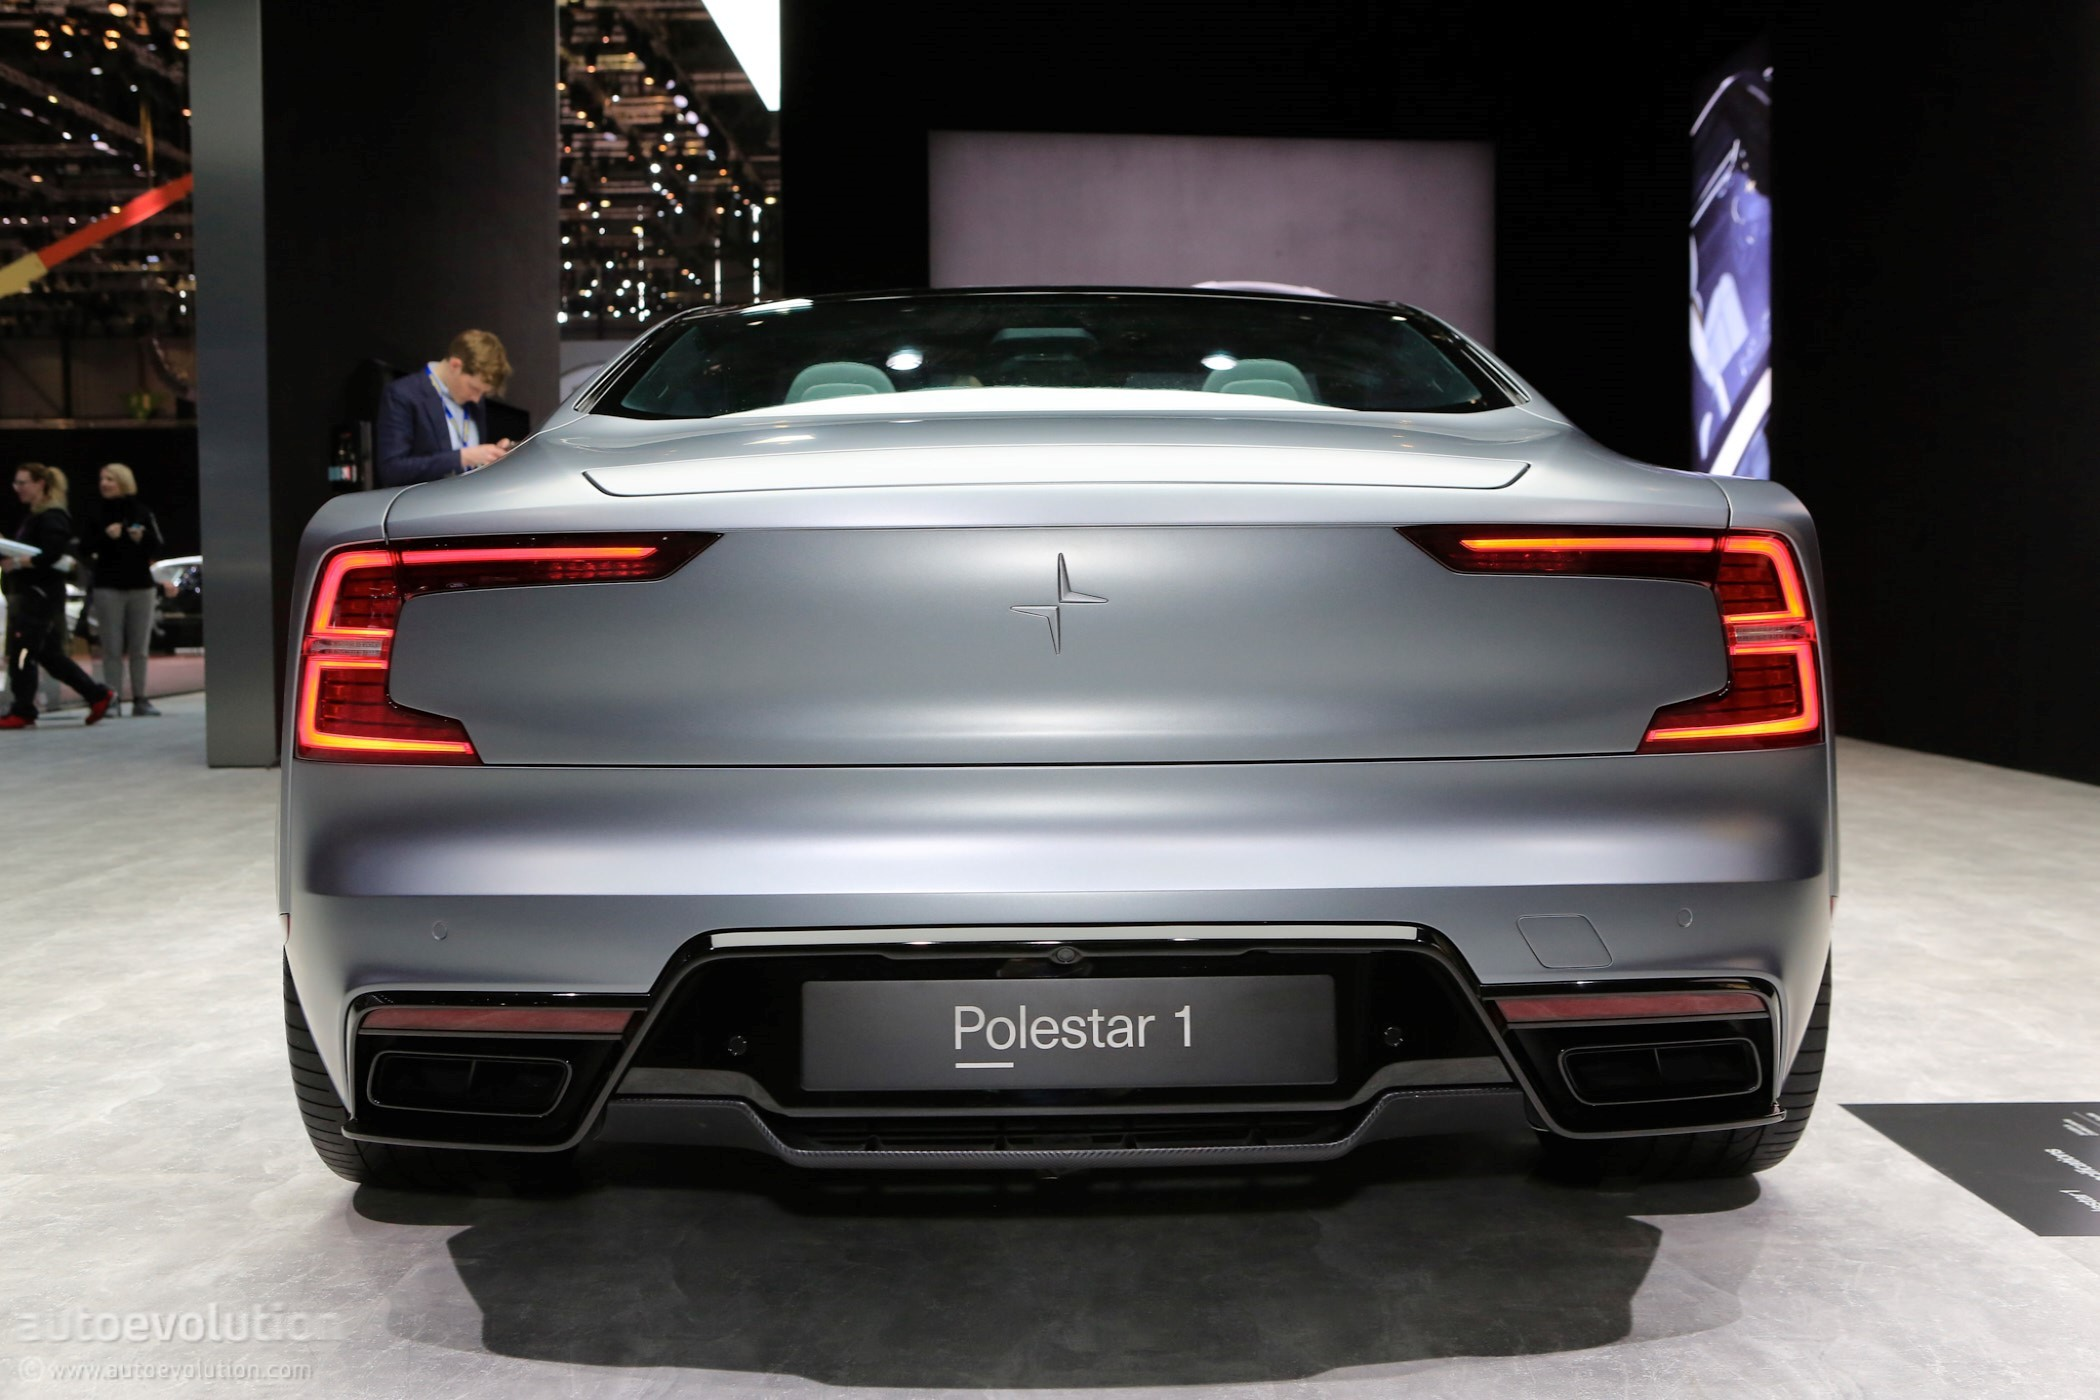 polestar 1 goes live at the 2018 geneva motor show wearing matte gray paint autoevolution. Black Bedroom Furniture Sets. Home Design Ideas